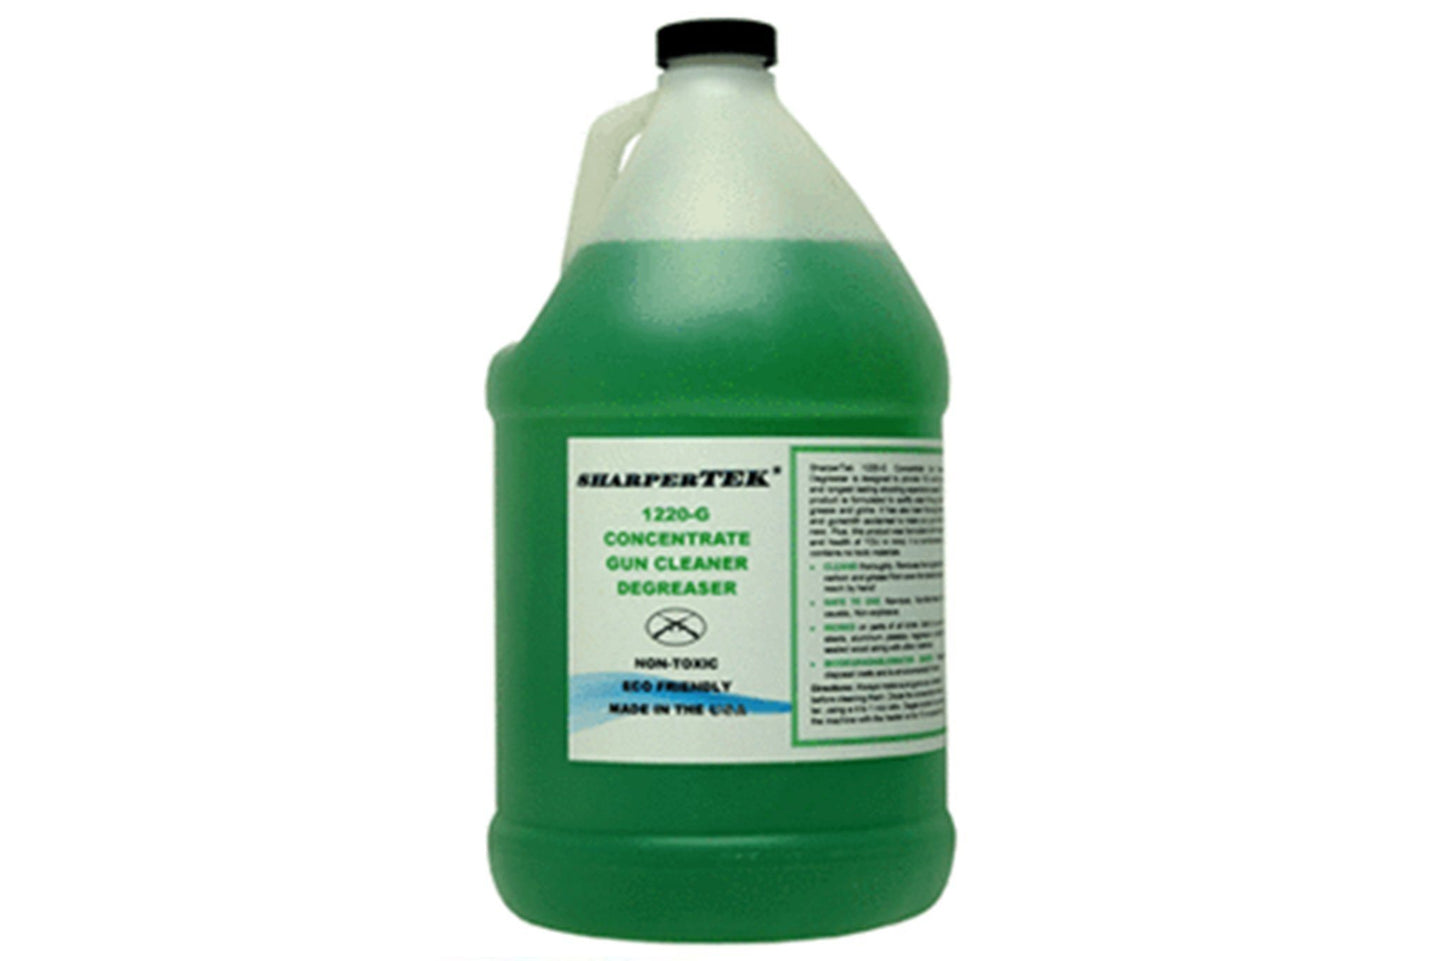 SharperTek Cleaning Solution 1220 G | Gun Cleaning Ultrasonic Solution - leadsonics